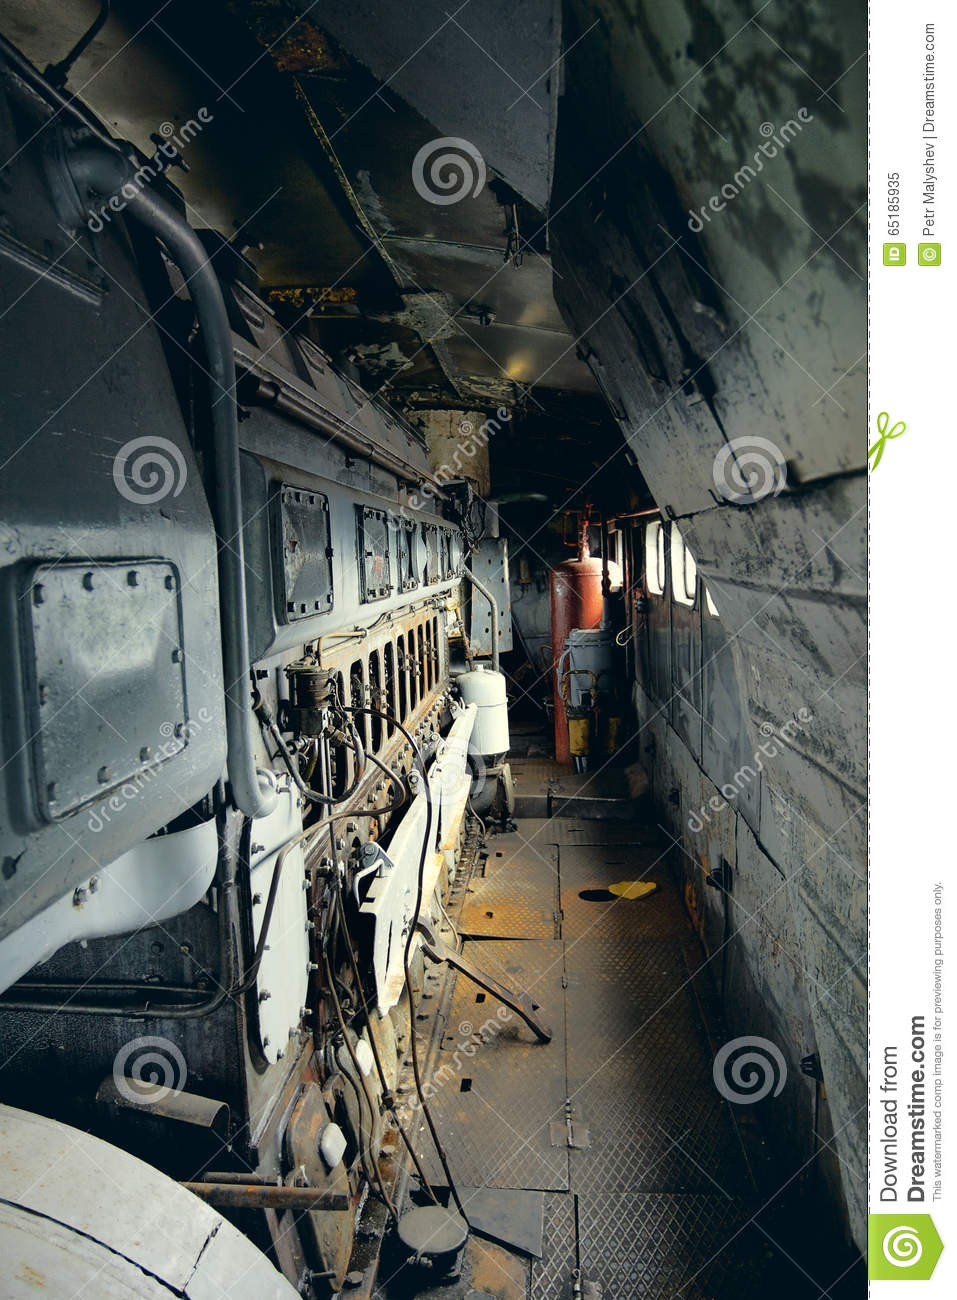 Vintage Electric Locomotive Interior Stock Image